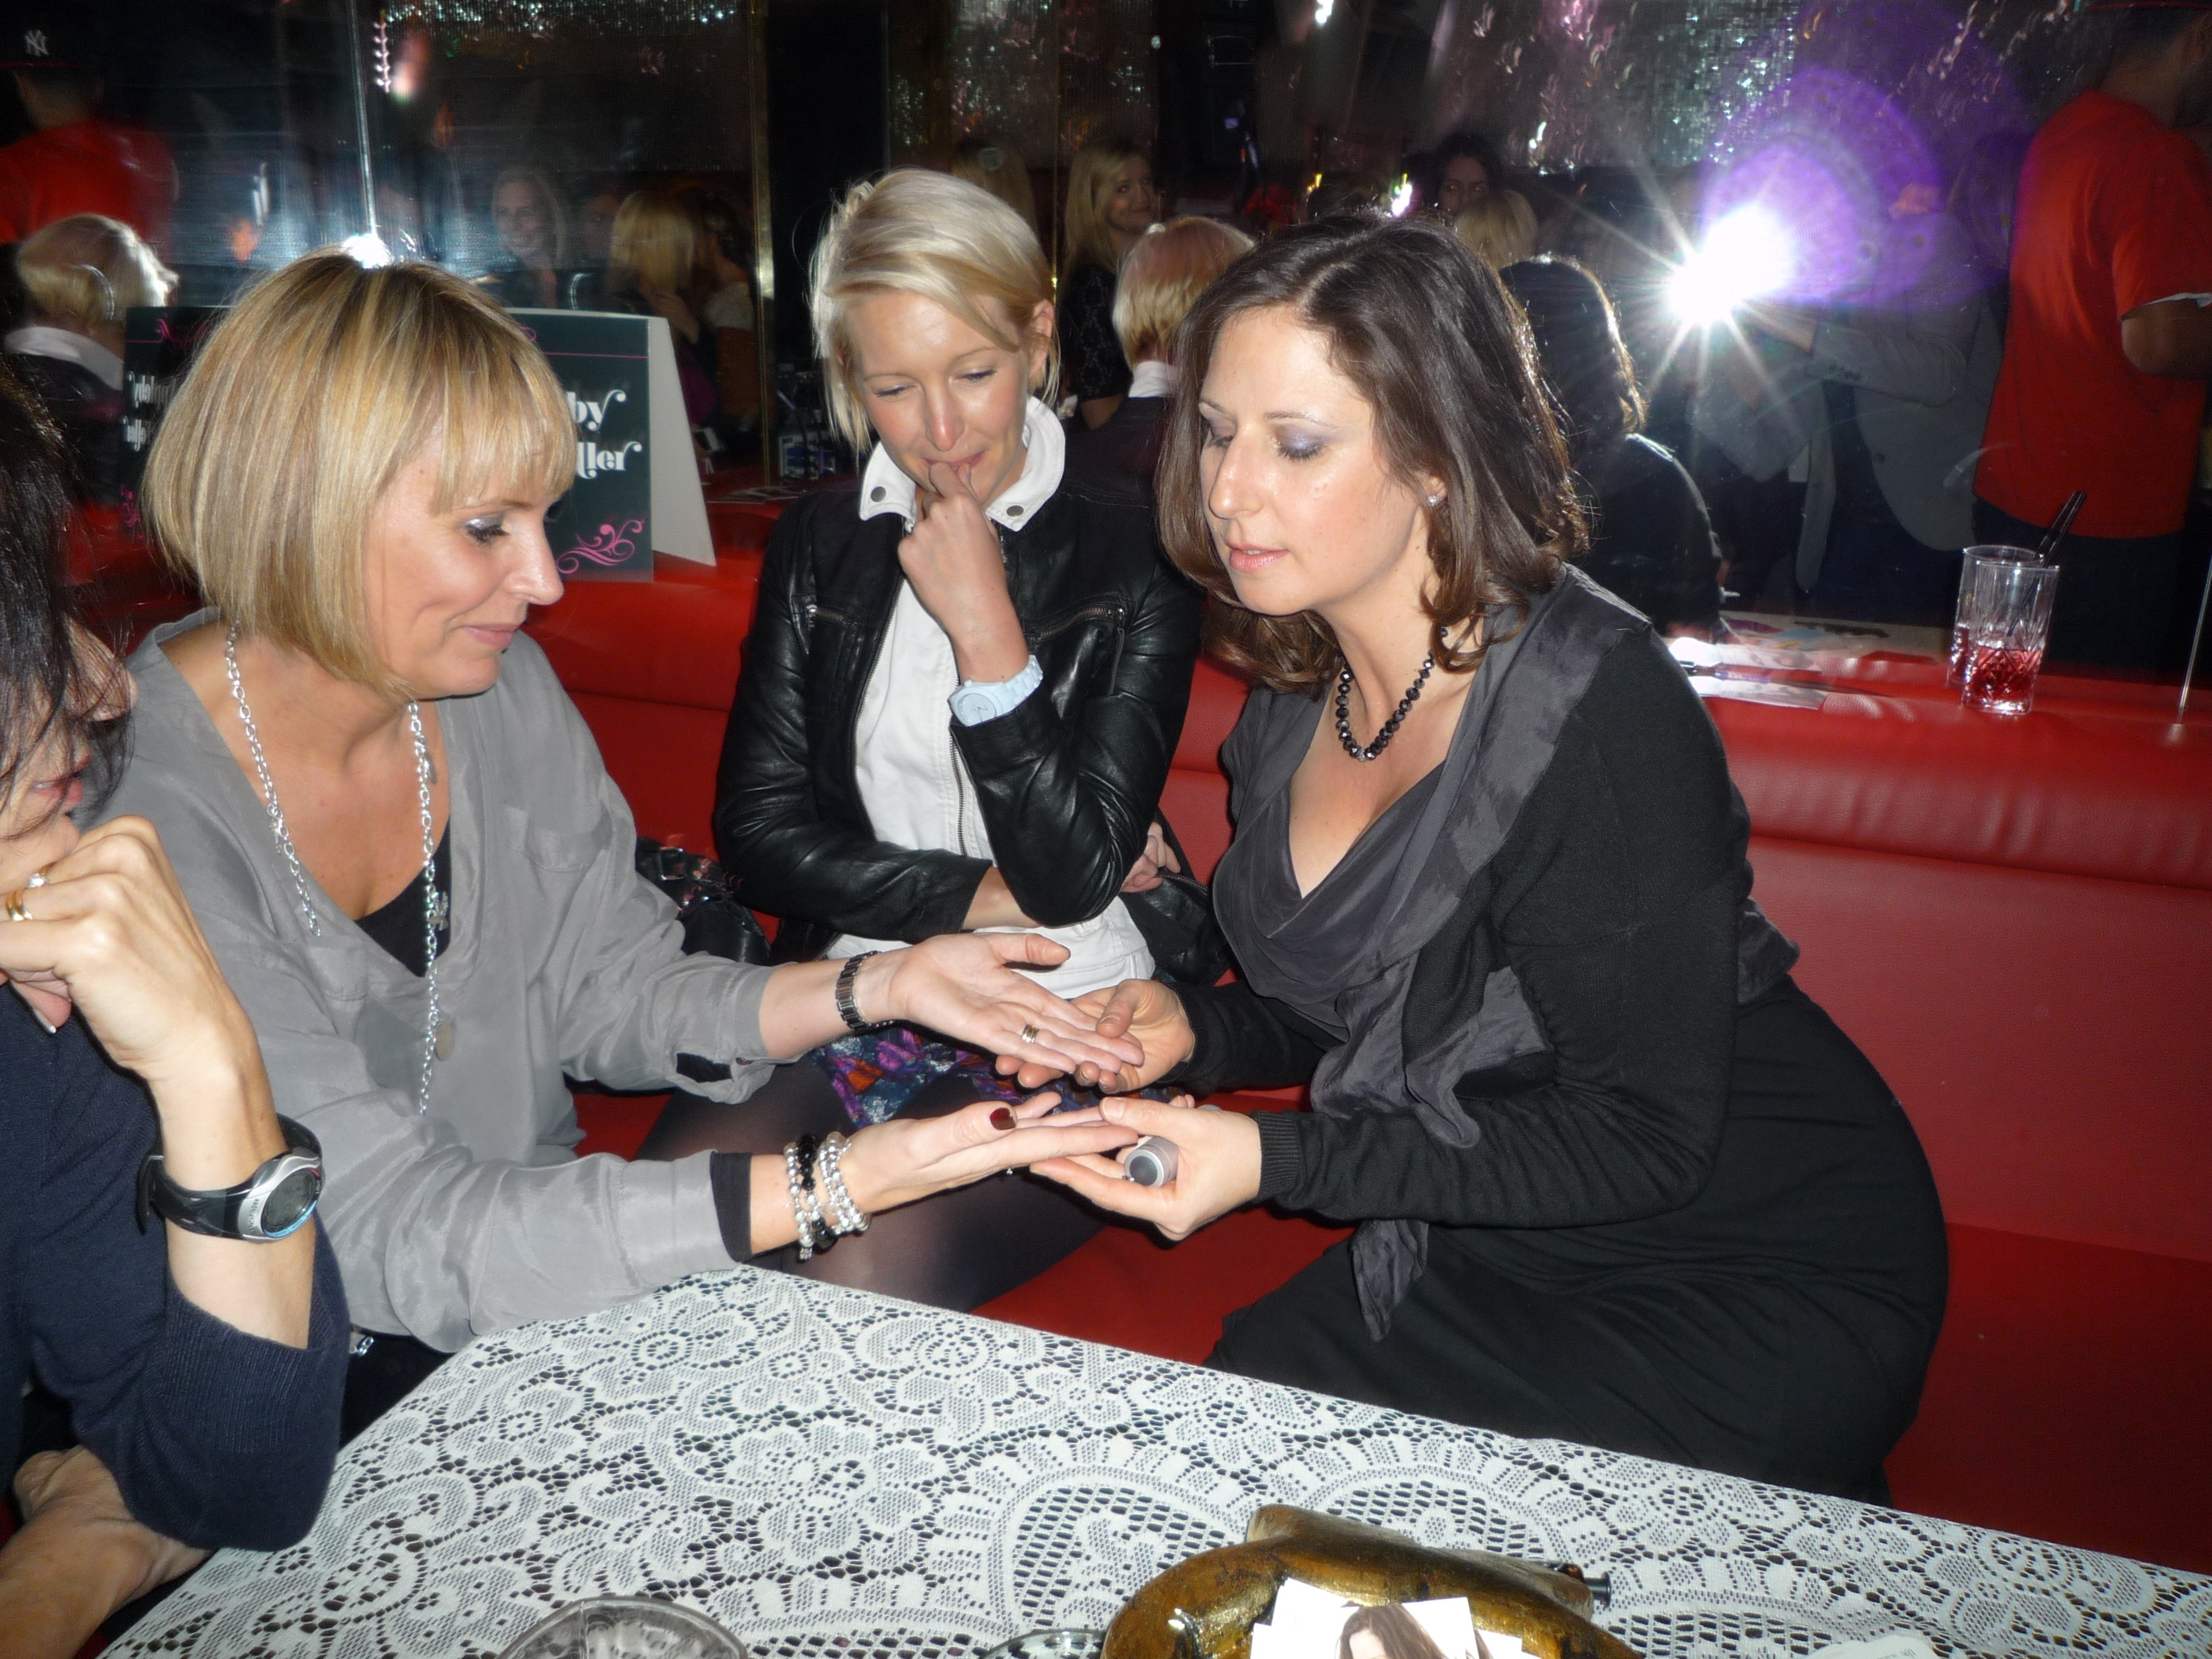 Palmistry at the Cosmo Blog Awards